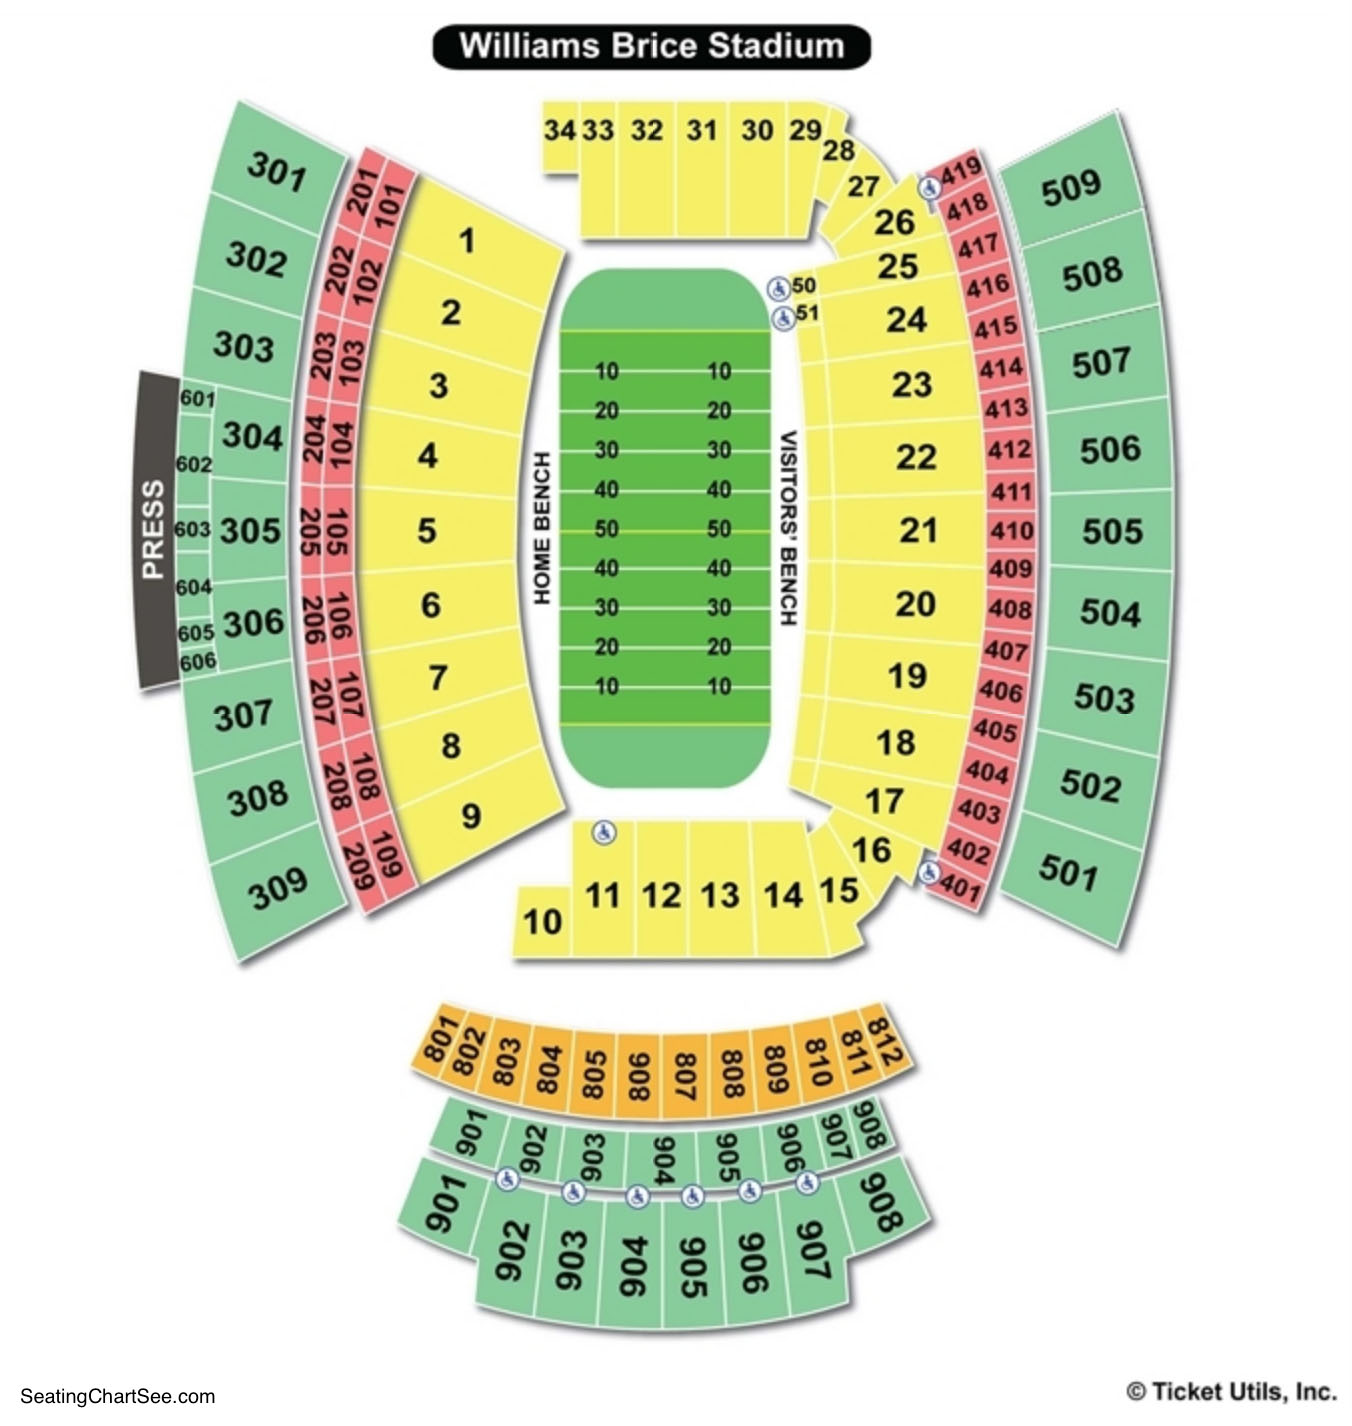 Williams-Brice Stadium Seating Charts Views | Games ...